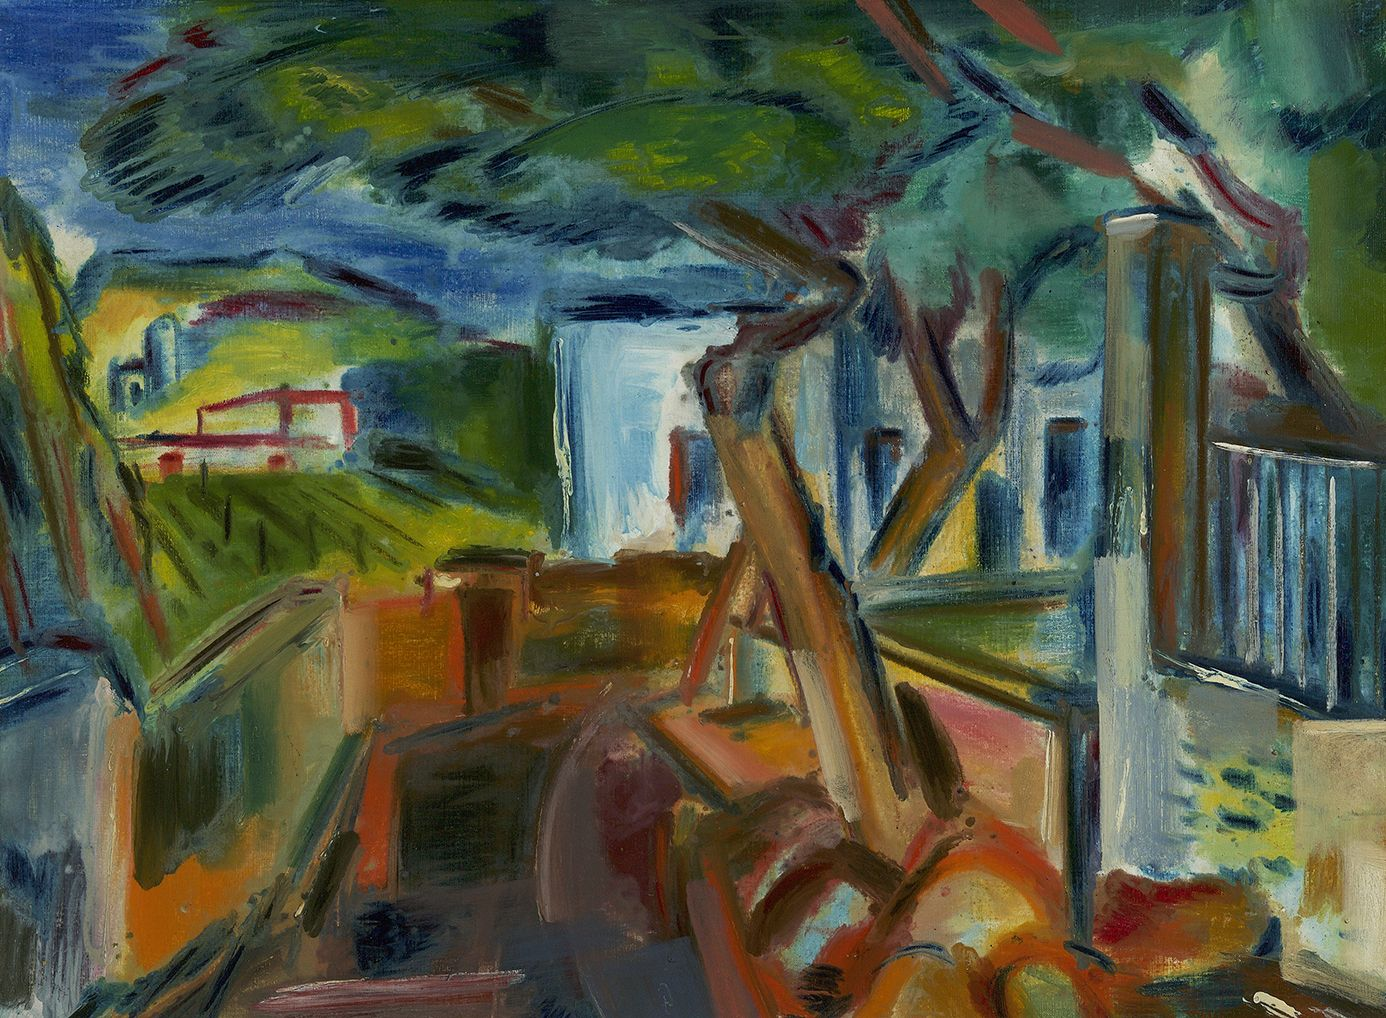 Vaclav Vytlacil (1892-1984), Landscape with Houses and Trees, circa 1924